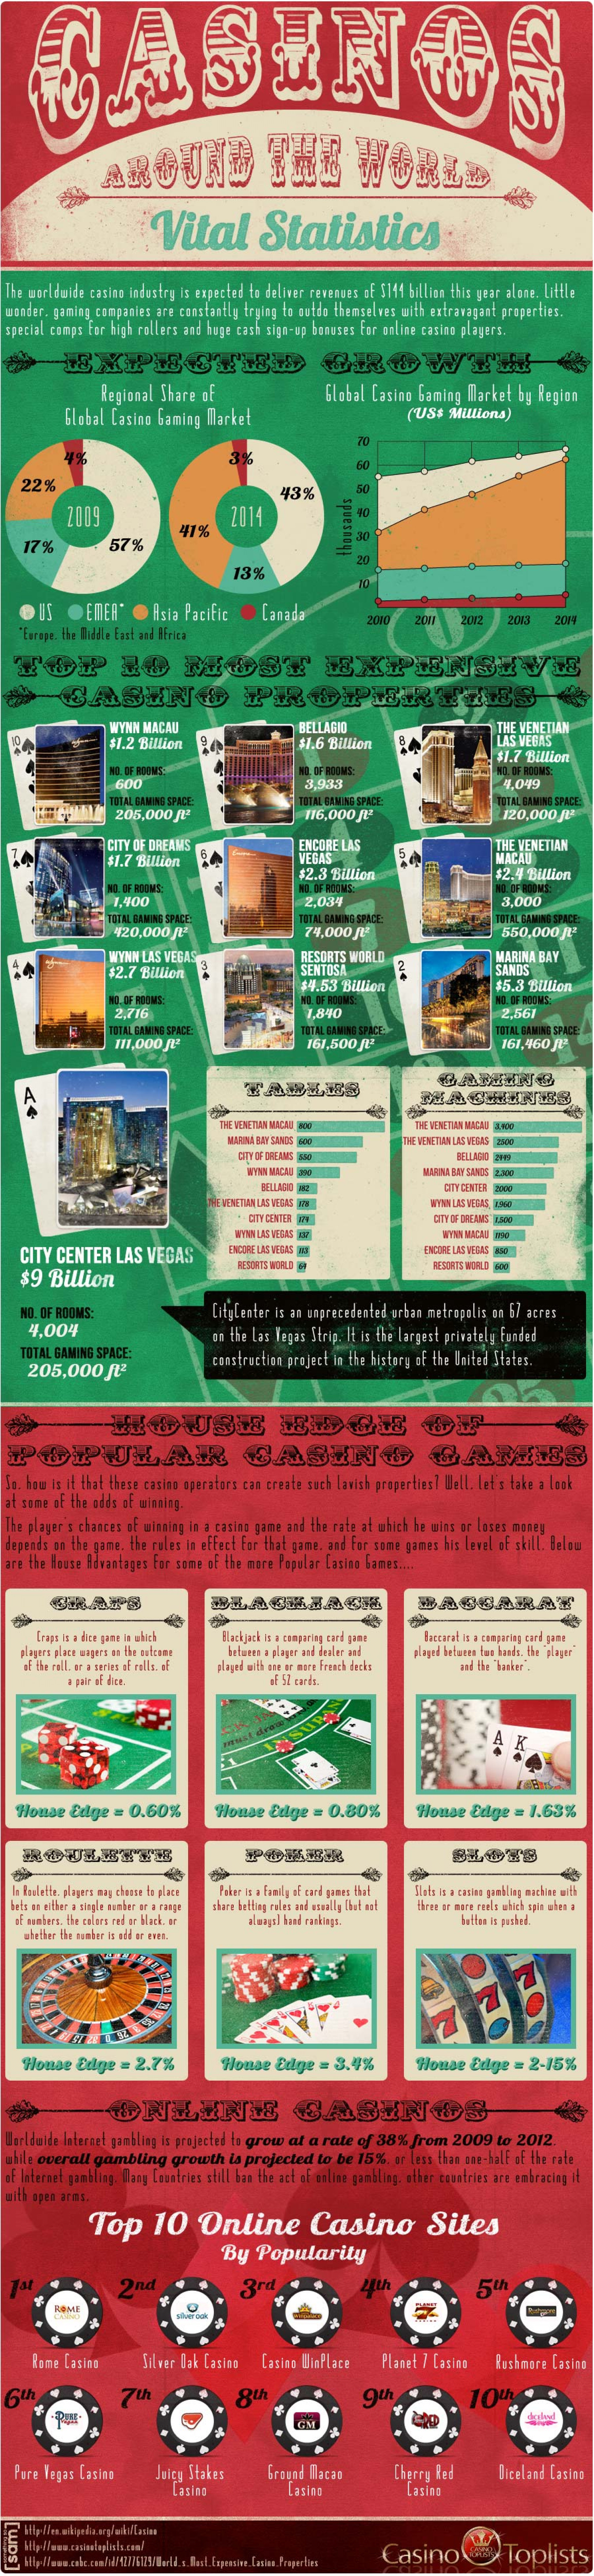 Casinos Around The World Infographic